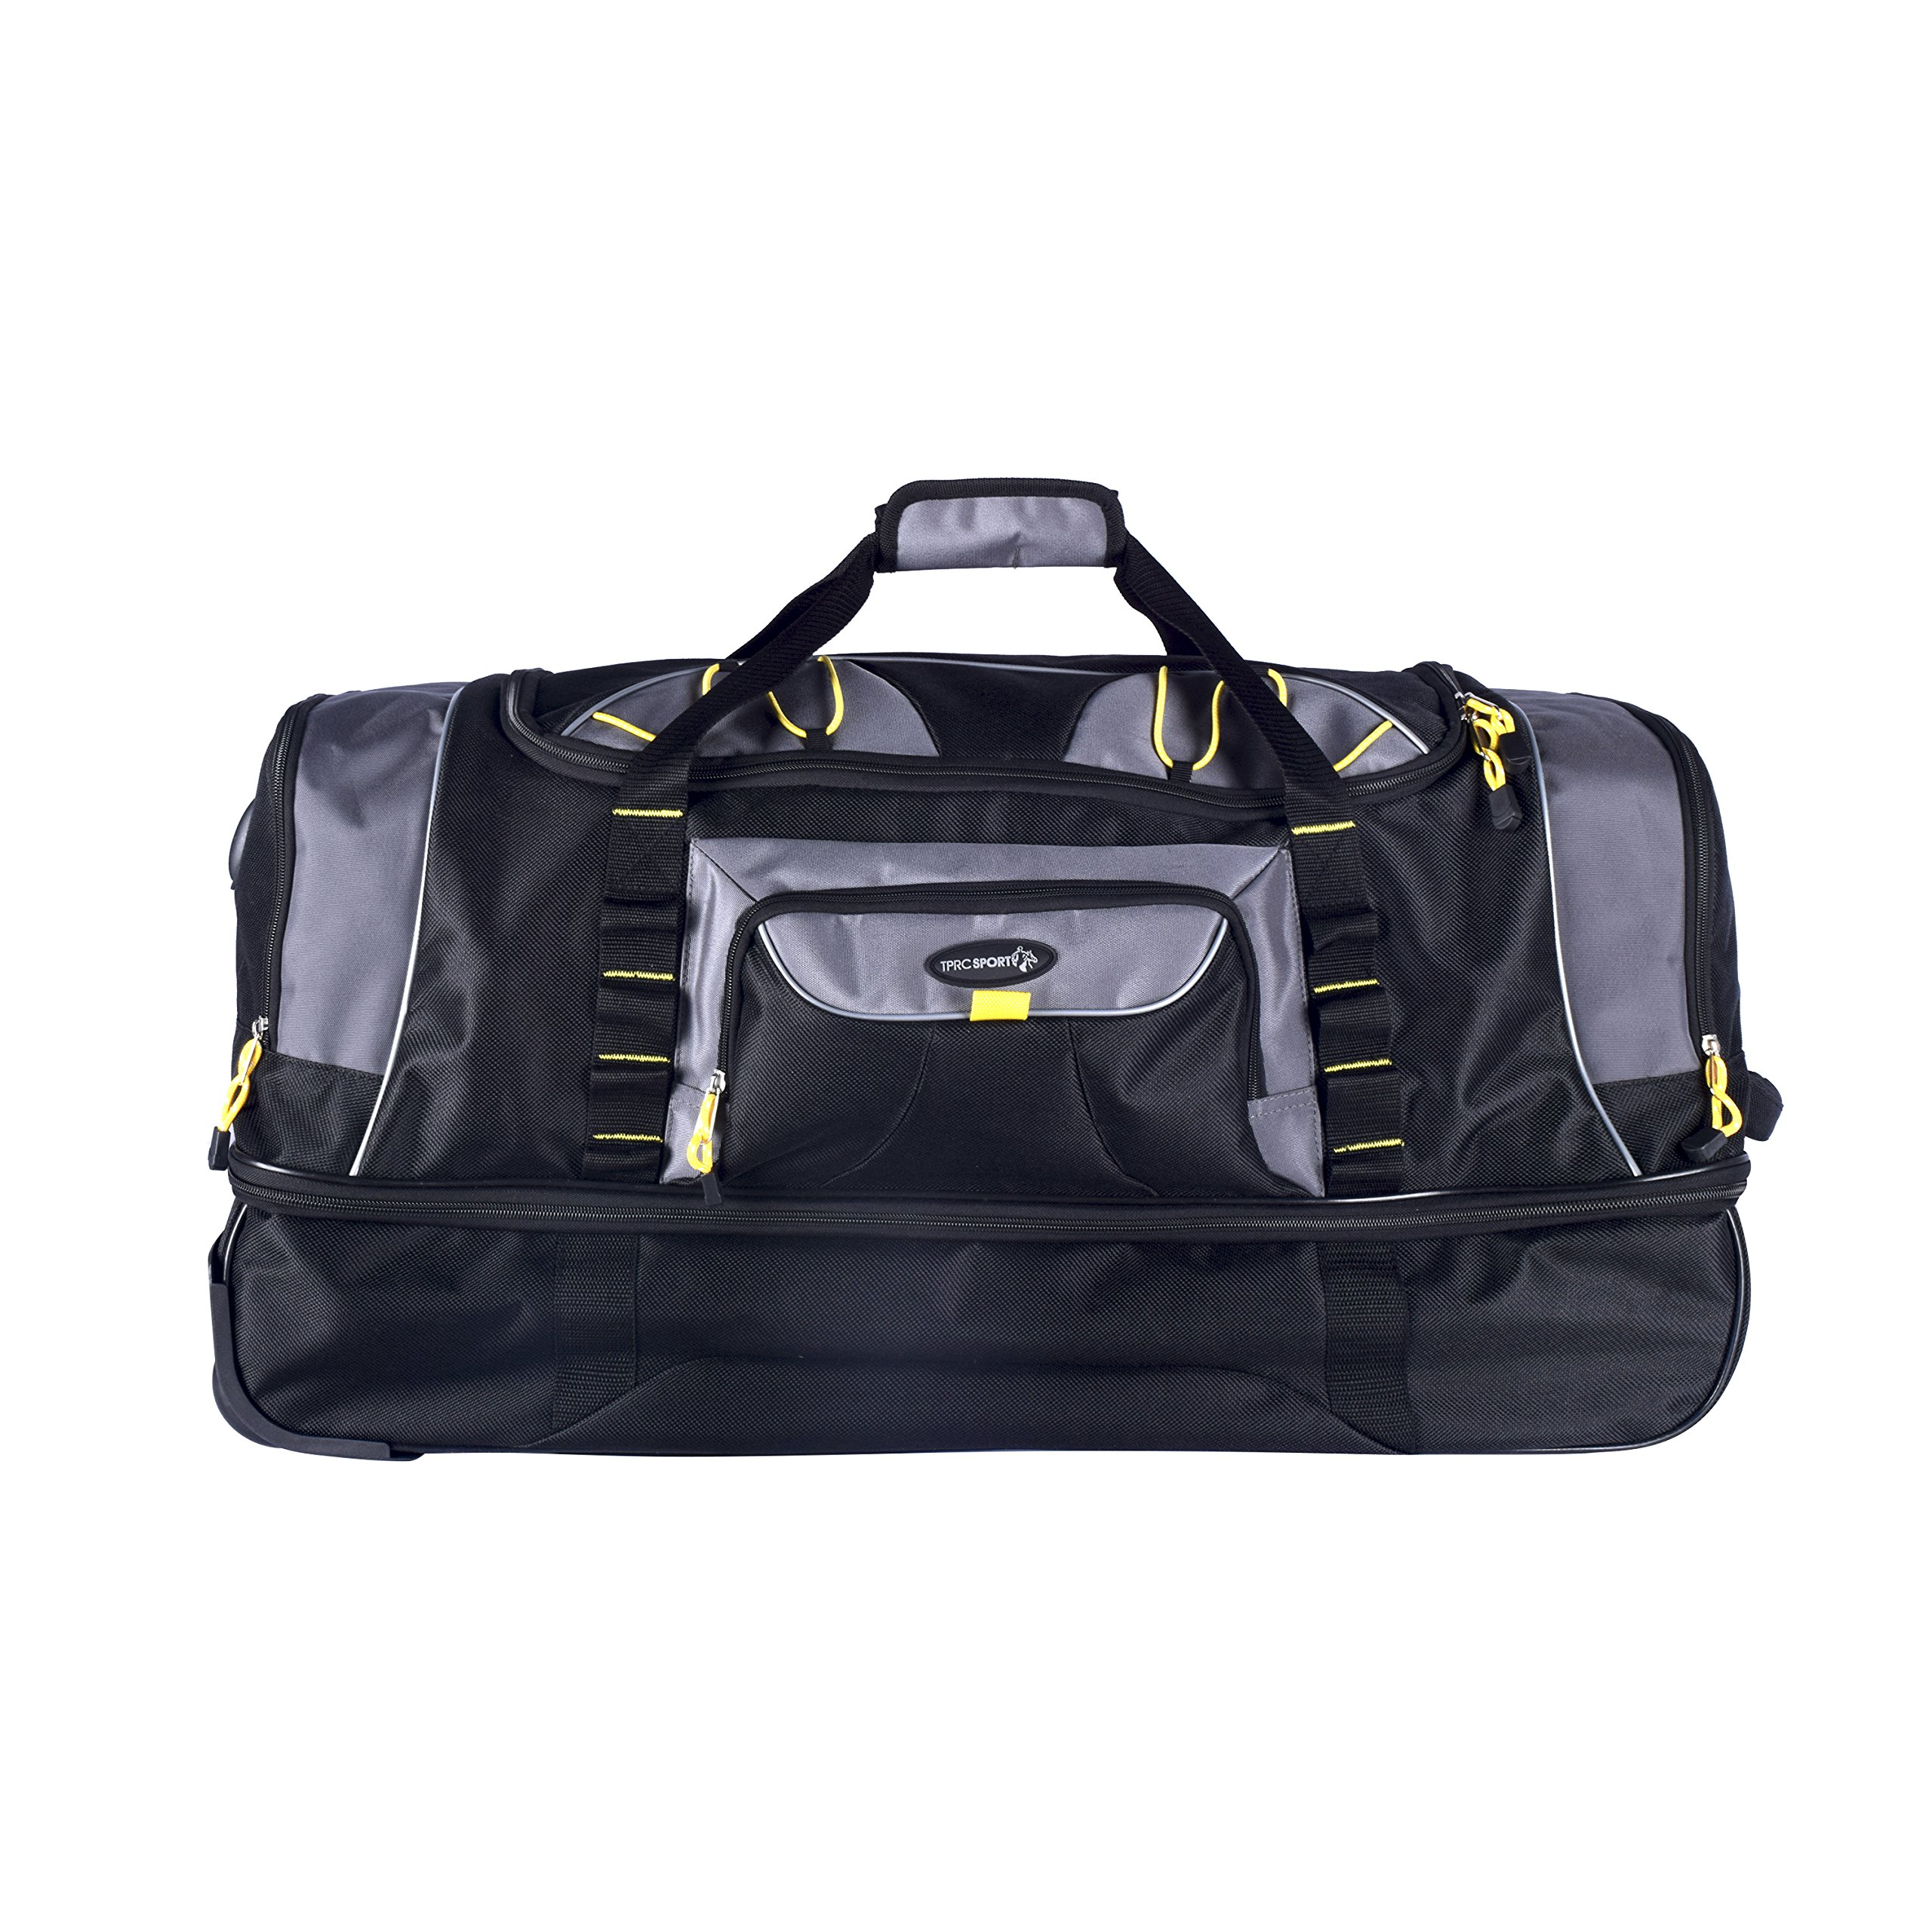 TPRC 30'' Black with Yellow Trims ''Sierra Madre'' 2-Section Drop-Bottom Rolling Duffel by TPRC